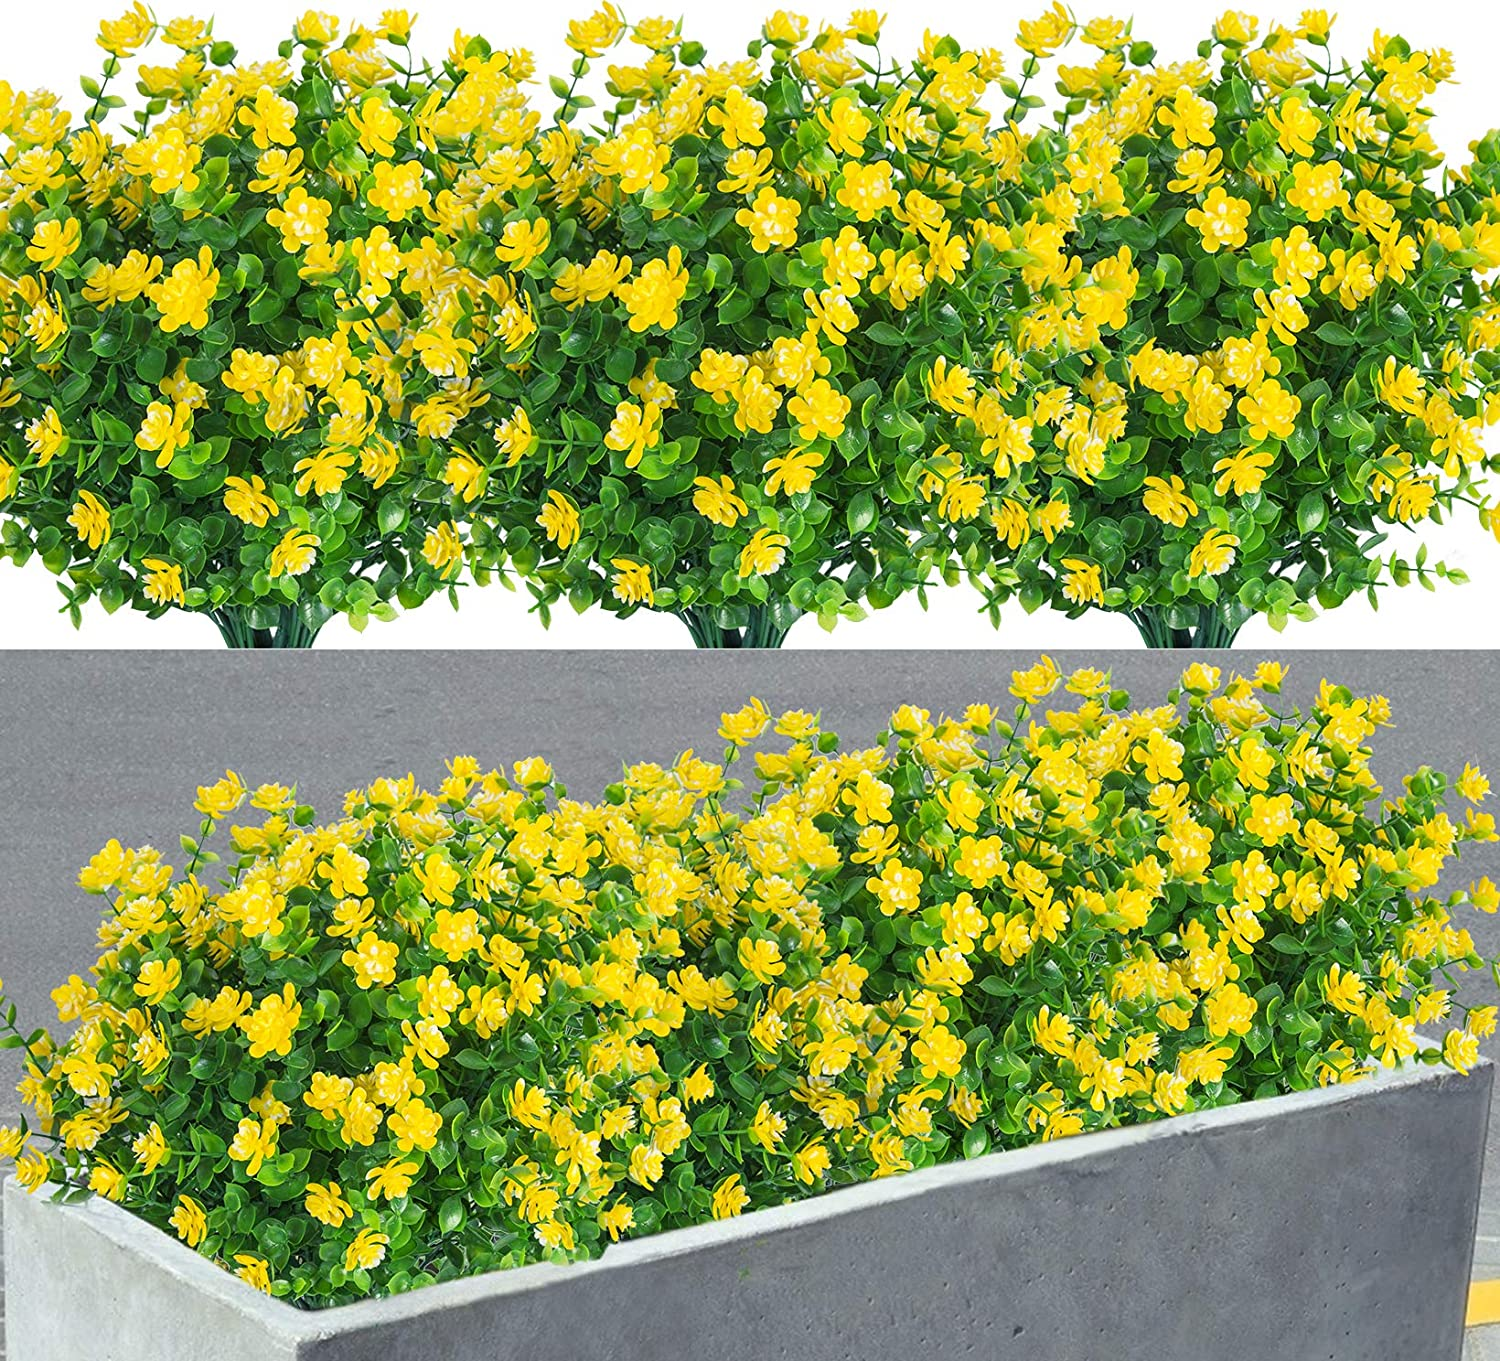 8 Pack Artificial Flowers Fake Plants Outdoor uv Resistant Faux Plastic Plants Greenery Shrubs for Indoor Outdoor Hanging Planter Home Room Kitchen Porch Window Box Decor (Yellow)